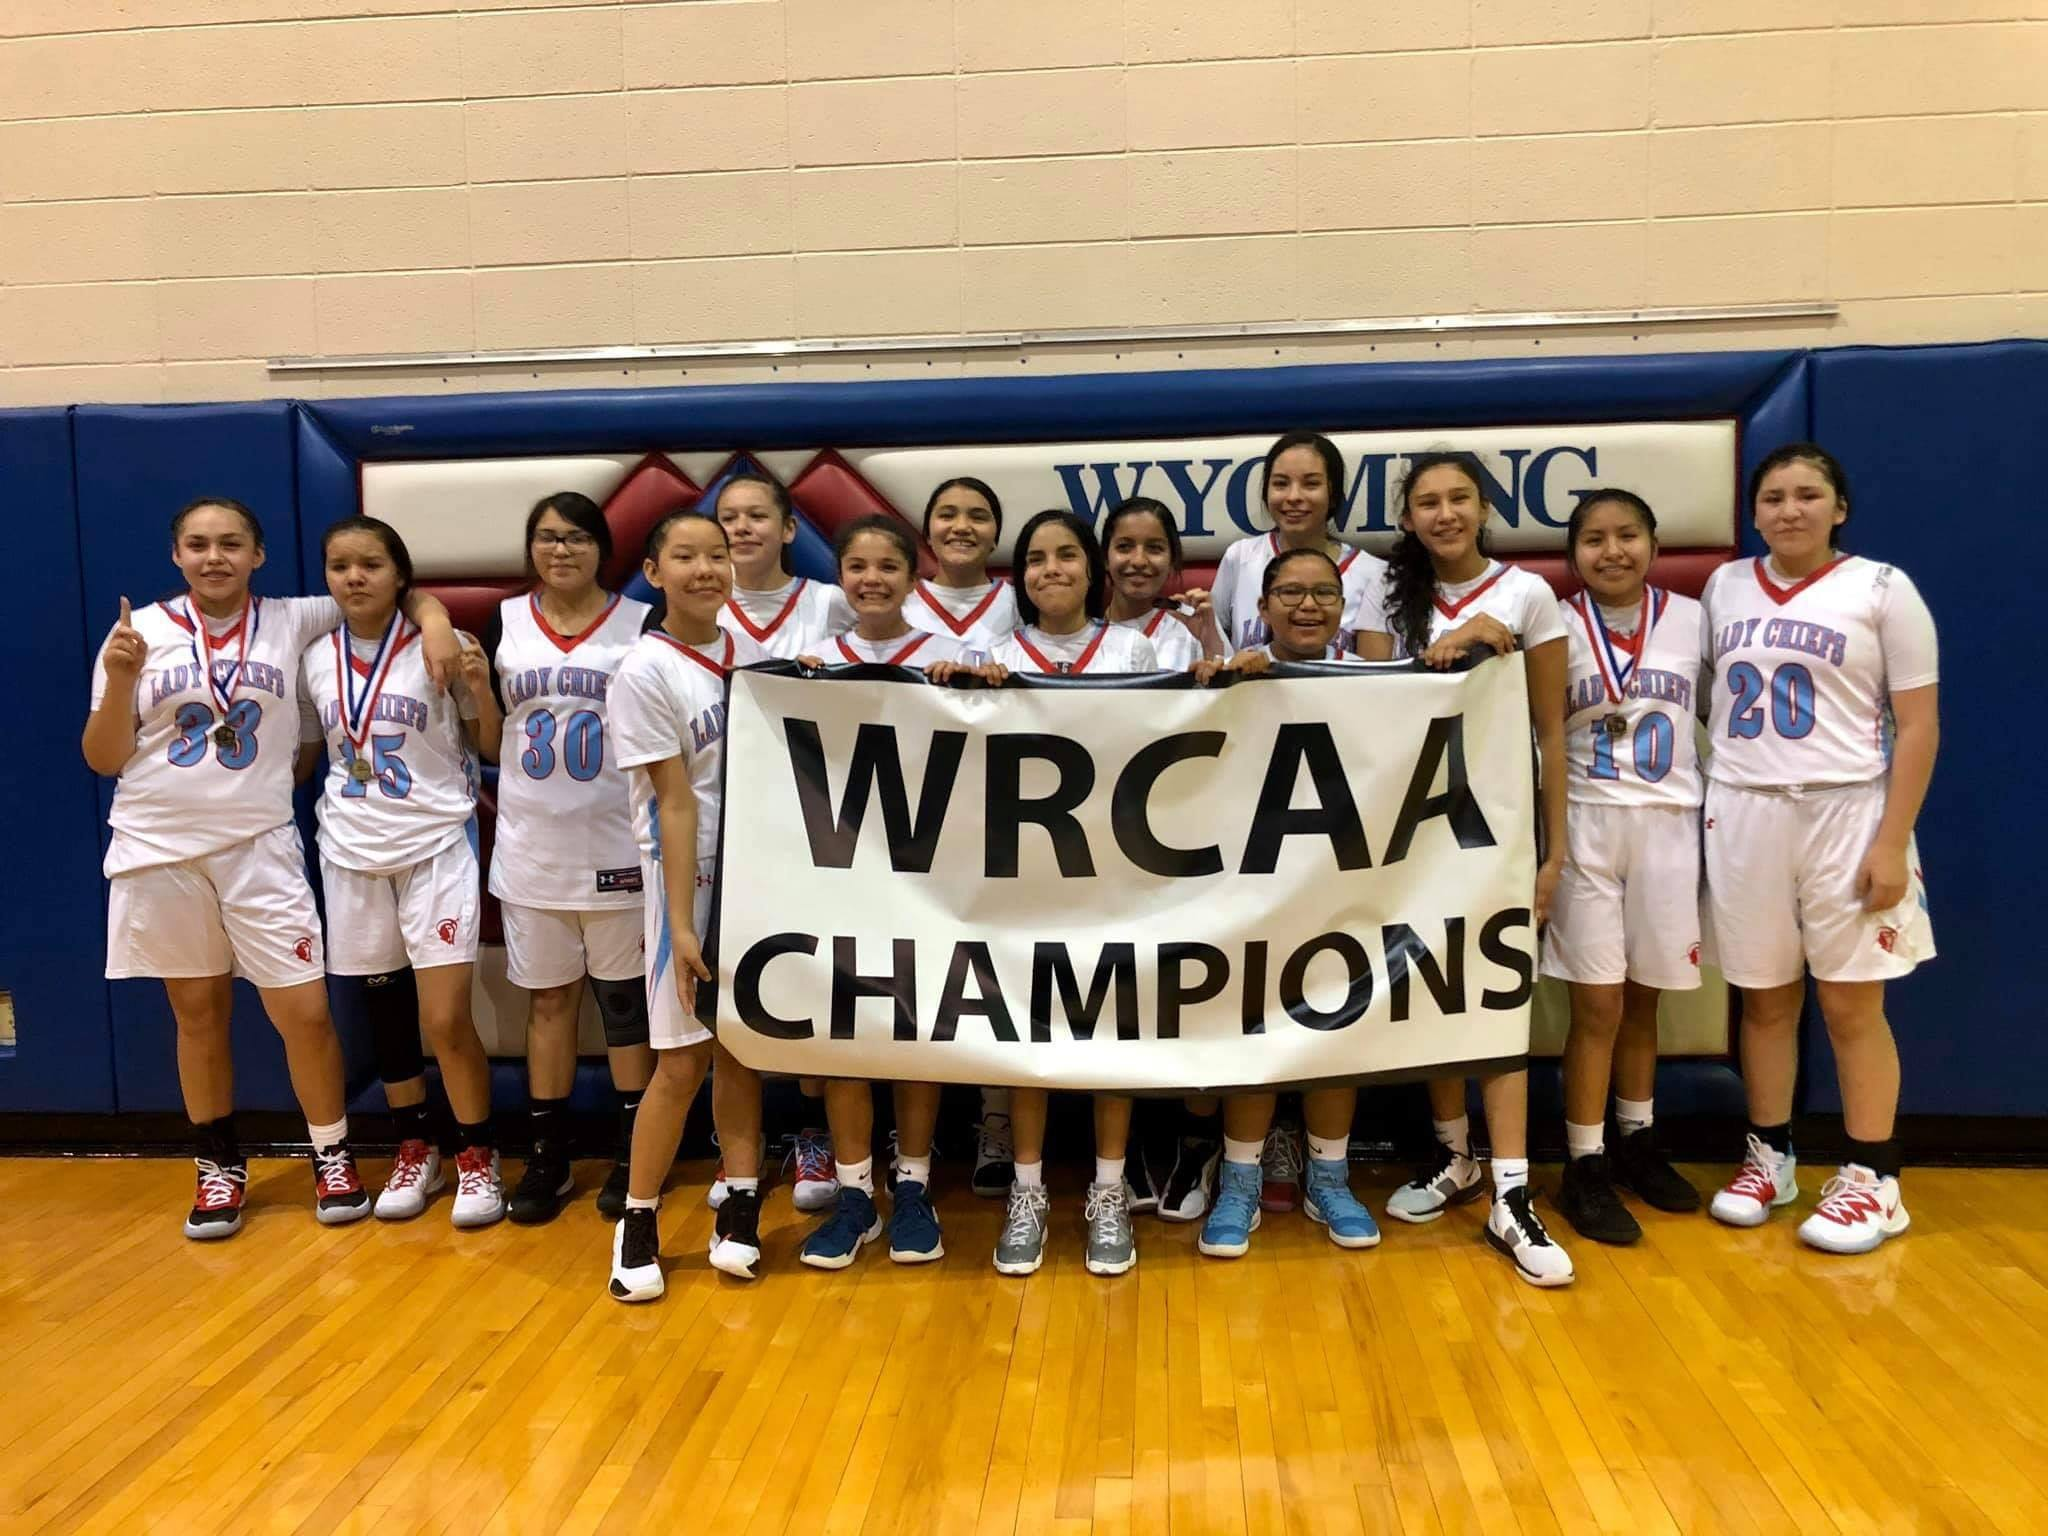 2019 WRCAA Jr High Girls Champions - Lady Chiefs